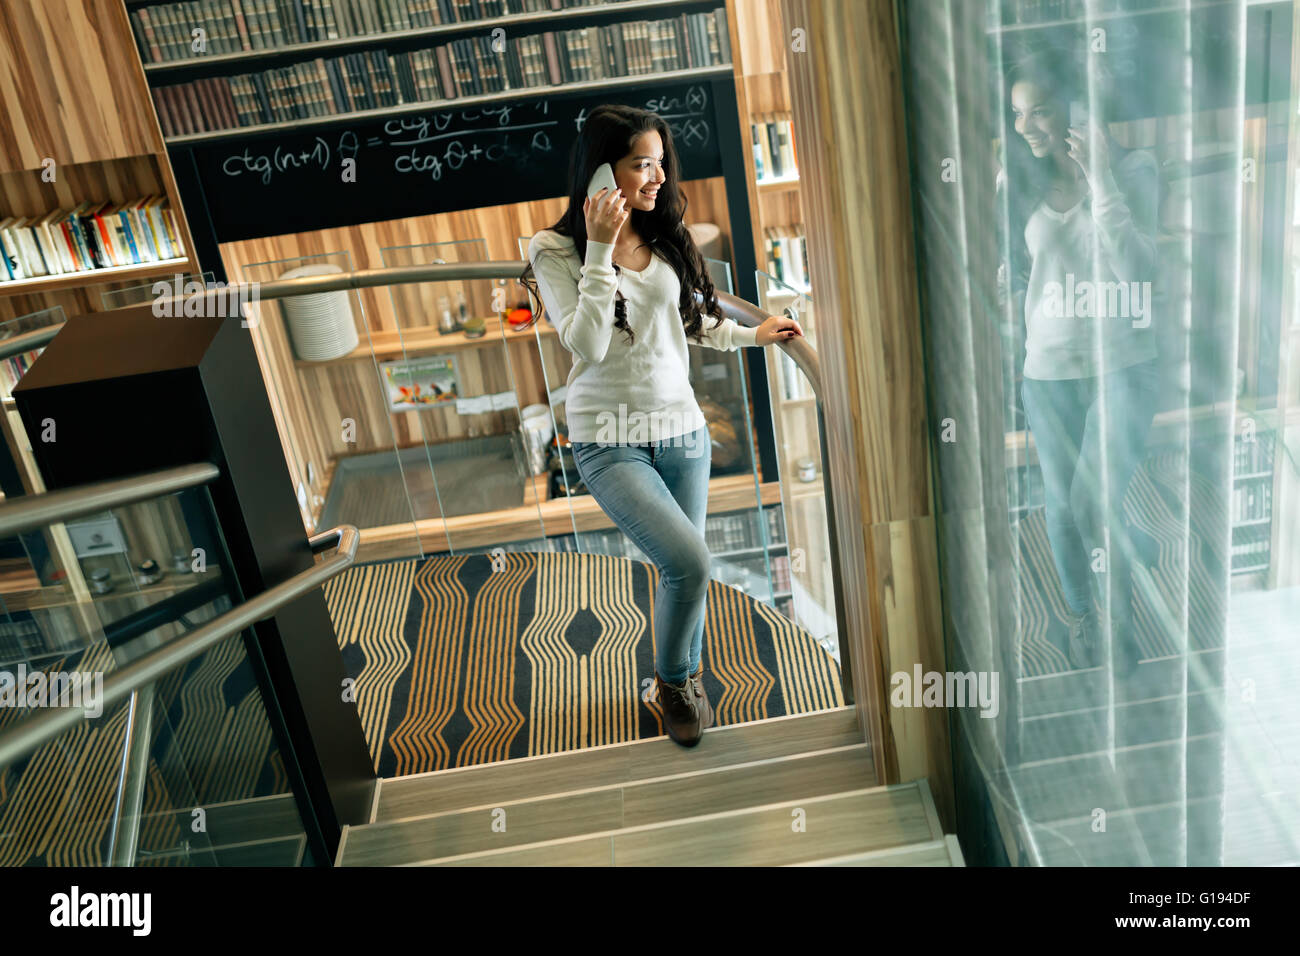 Businesswoman using phone intérieur et smiling Photo Stock